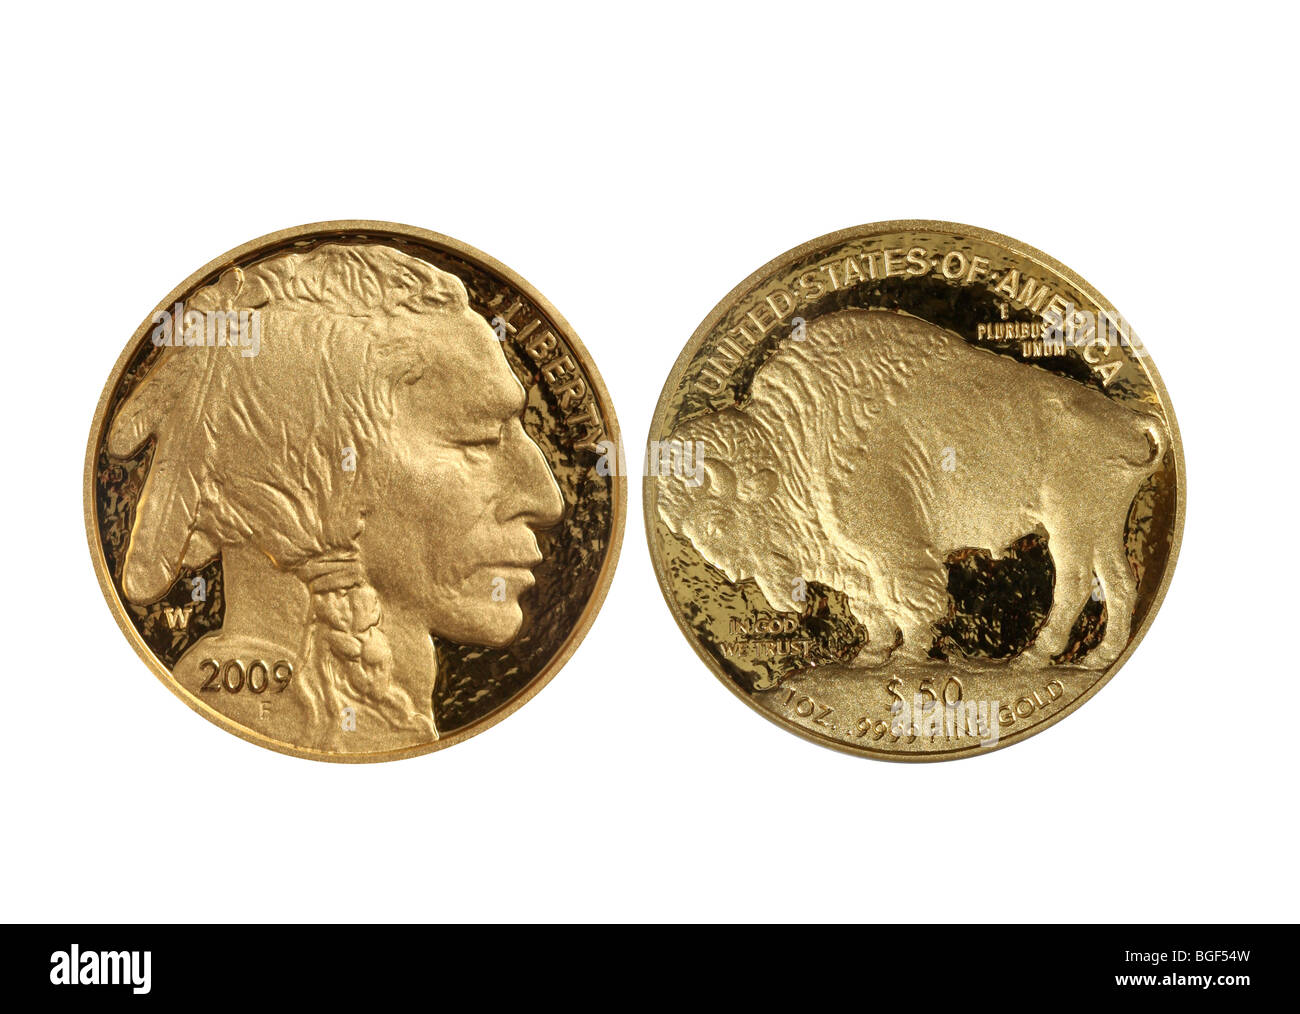 Front and back of the 2009 Proof Gold Buffalo .9999 fine coin. - Stock Image